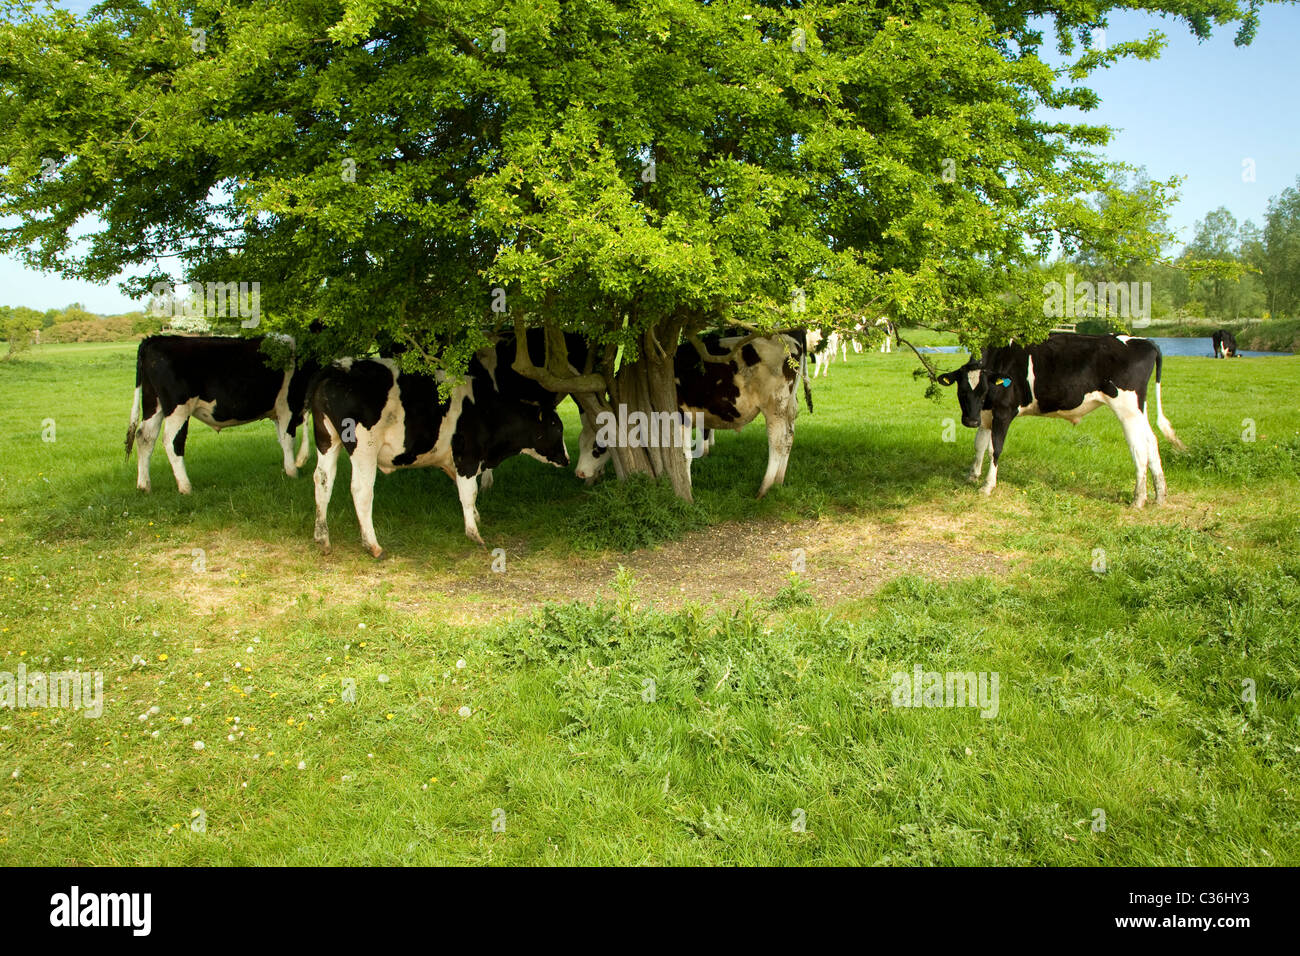 Young bullock calves graze under hawthorn tree river Stour valley Dedham Vale England - Stock Image